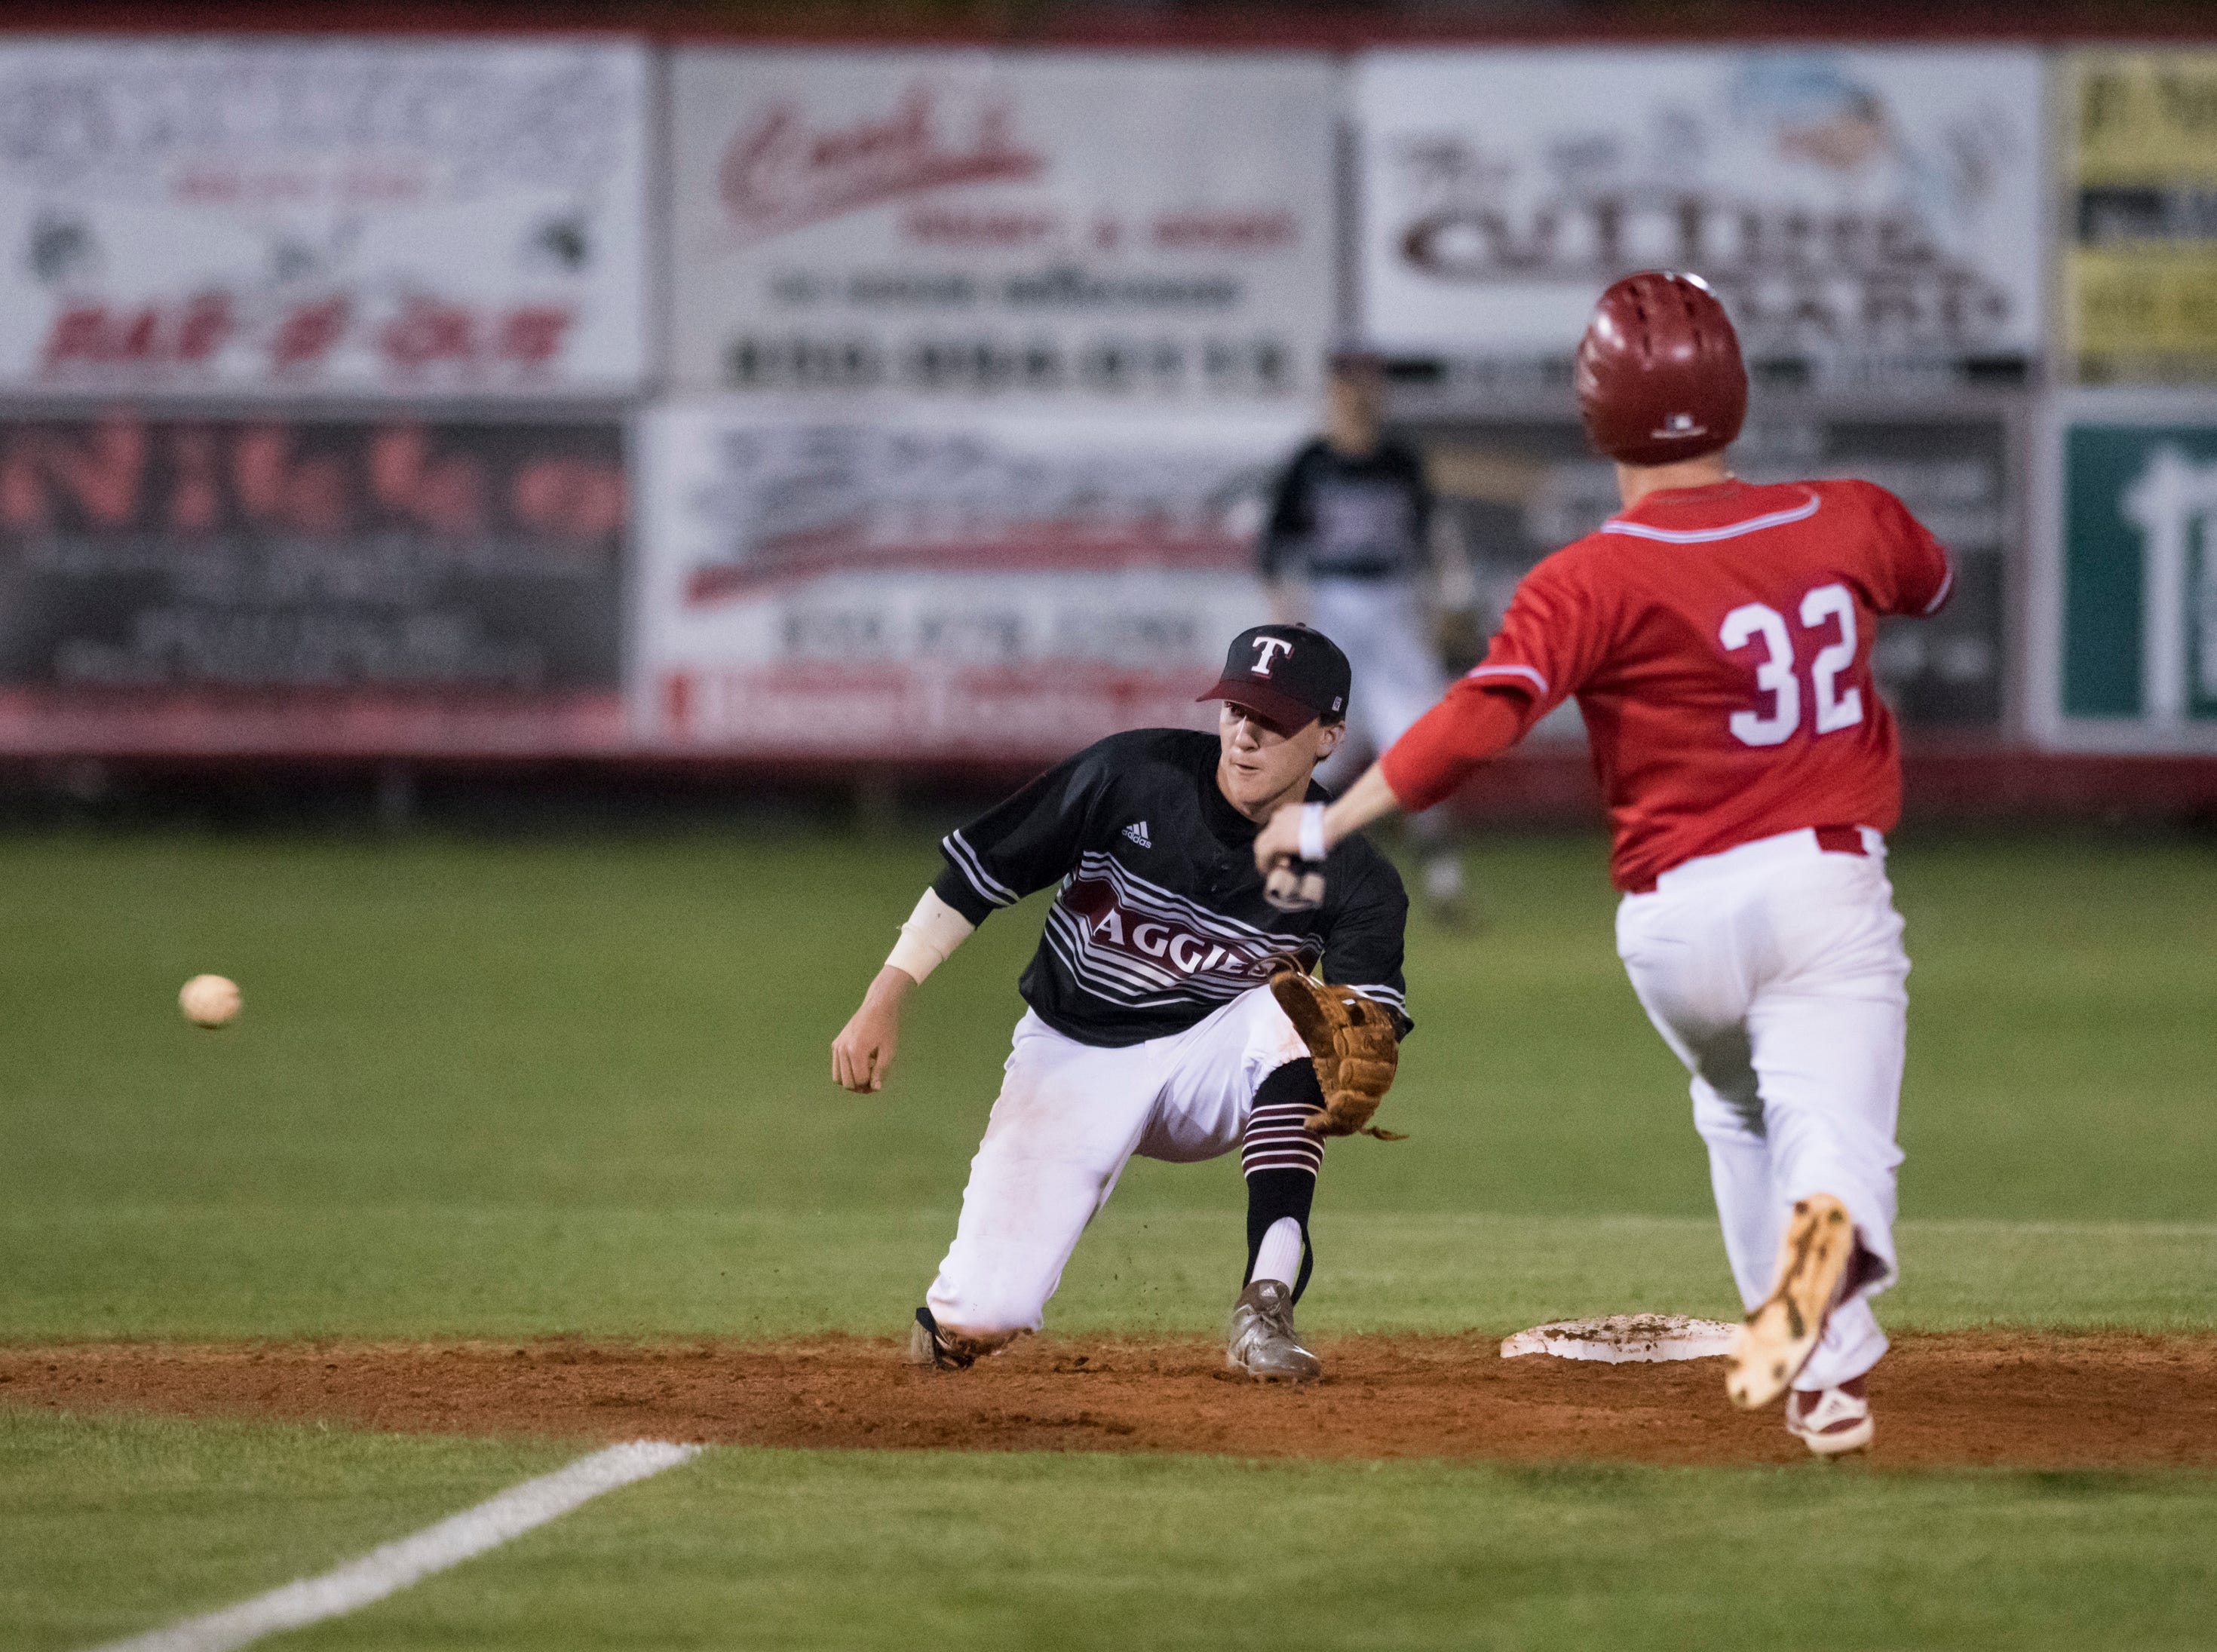 Shortstop Mason Land (9) gets for the throw before tagging Kobe Hesters (32) out as he attempts to steal second base during the Tate vs Pace baseball game at Pace High School on Thursday, April 11, 2019.